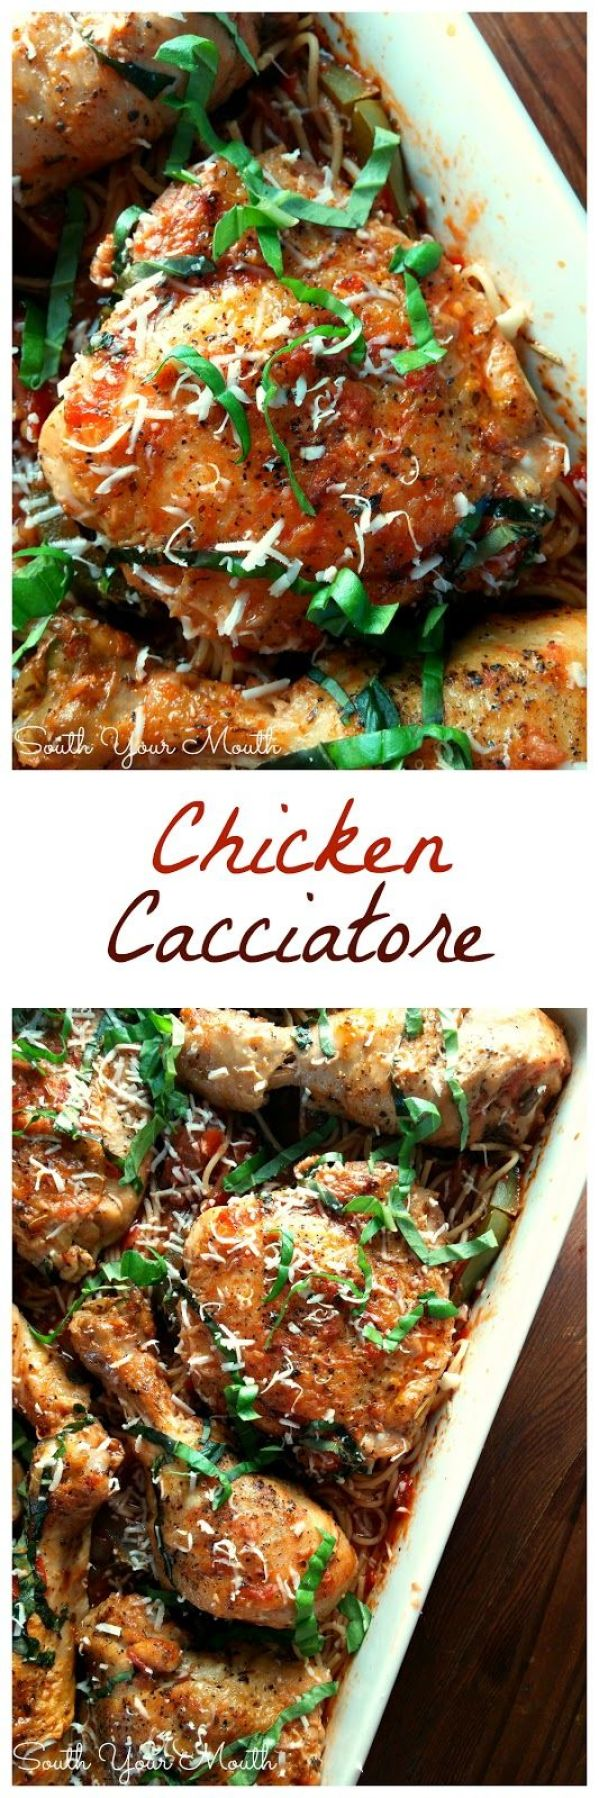 Chicken Cacciatore! This recipe can be made in the oven or crock pot! The chicken just falls off the bone after it stews in the rich tomato sauce.: Chicken Cacciatore! This recipe can be made in the oven or crock pot! The chicken just falls off the bone after it stews in the rich tomato sauce.